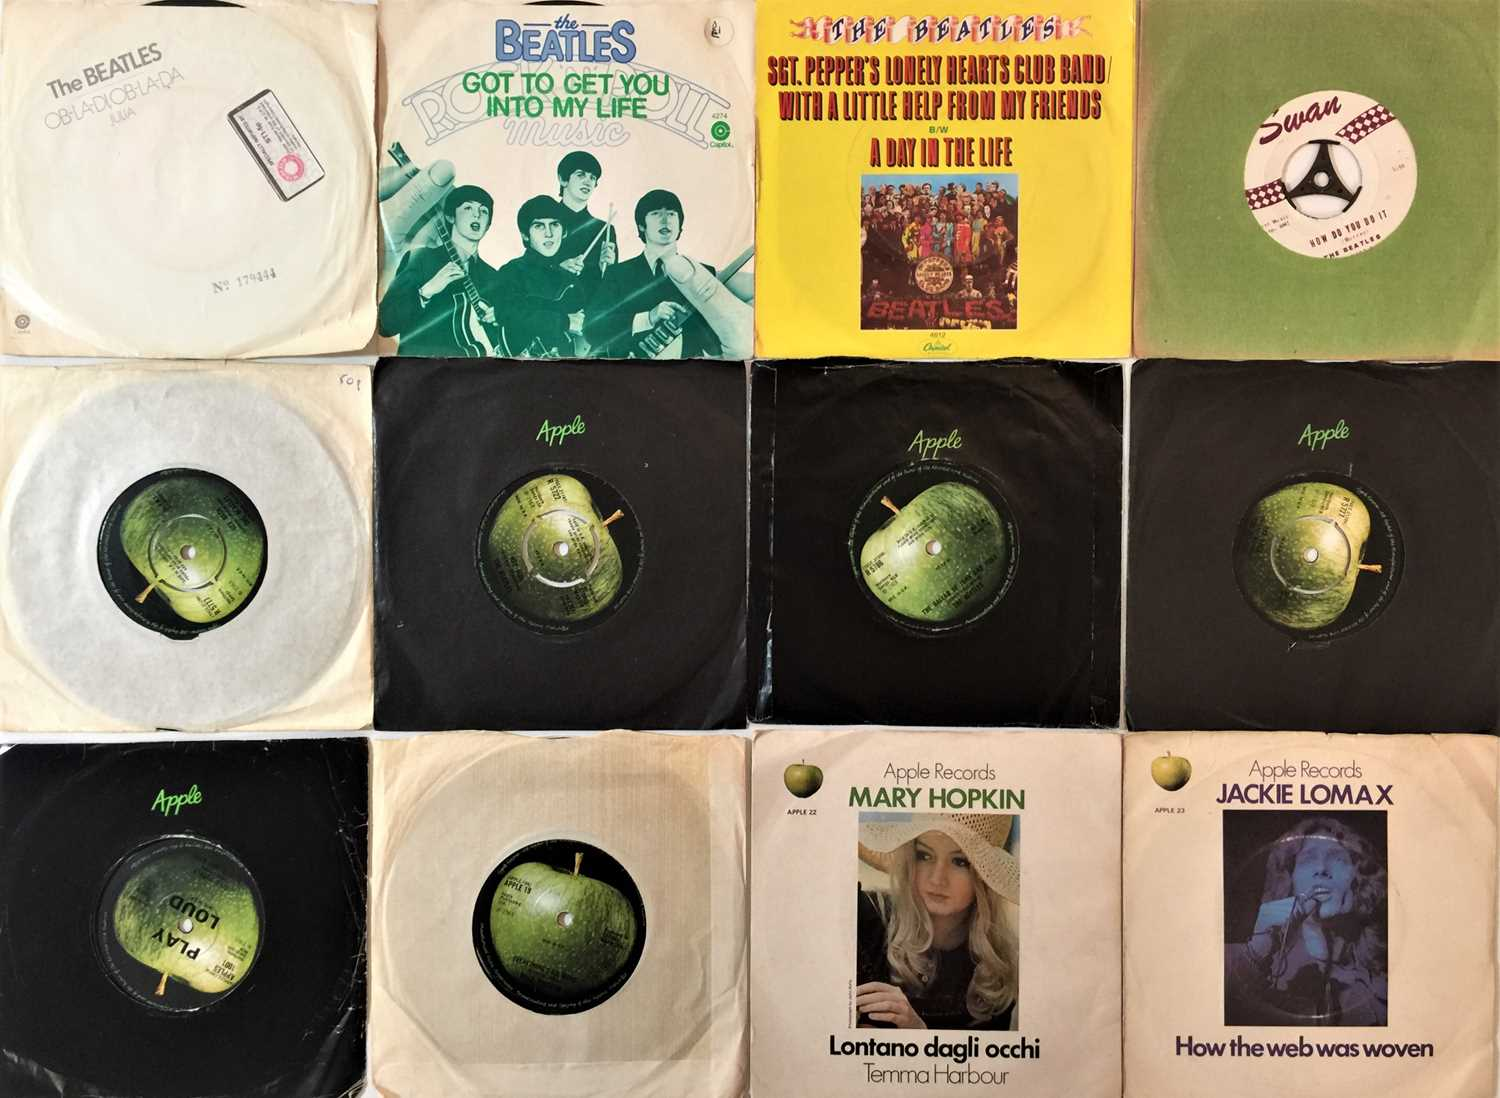 """THE BEATLES/ APPLE ARTISTS - 7"""" COLLECTION - Image 2 of 3"""